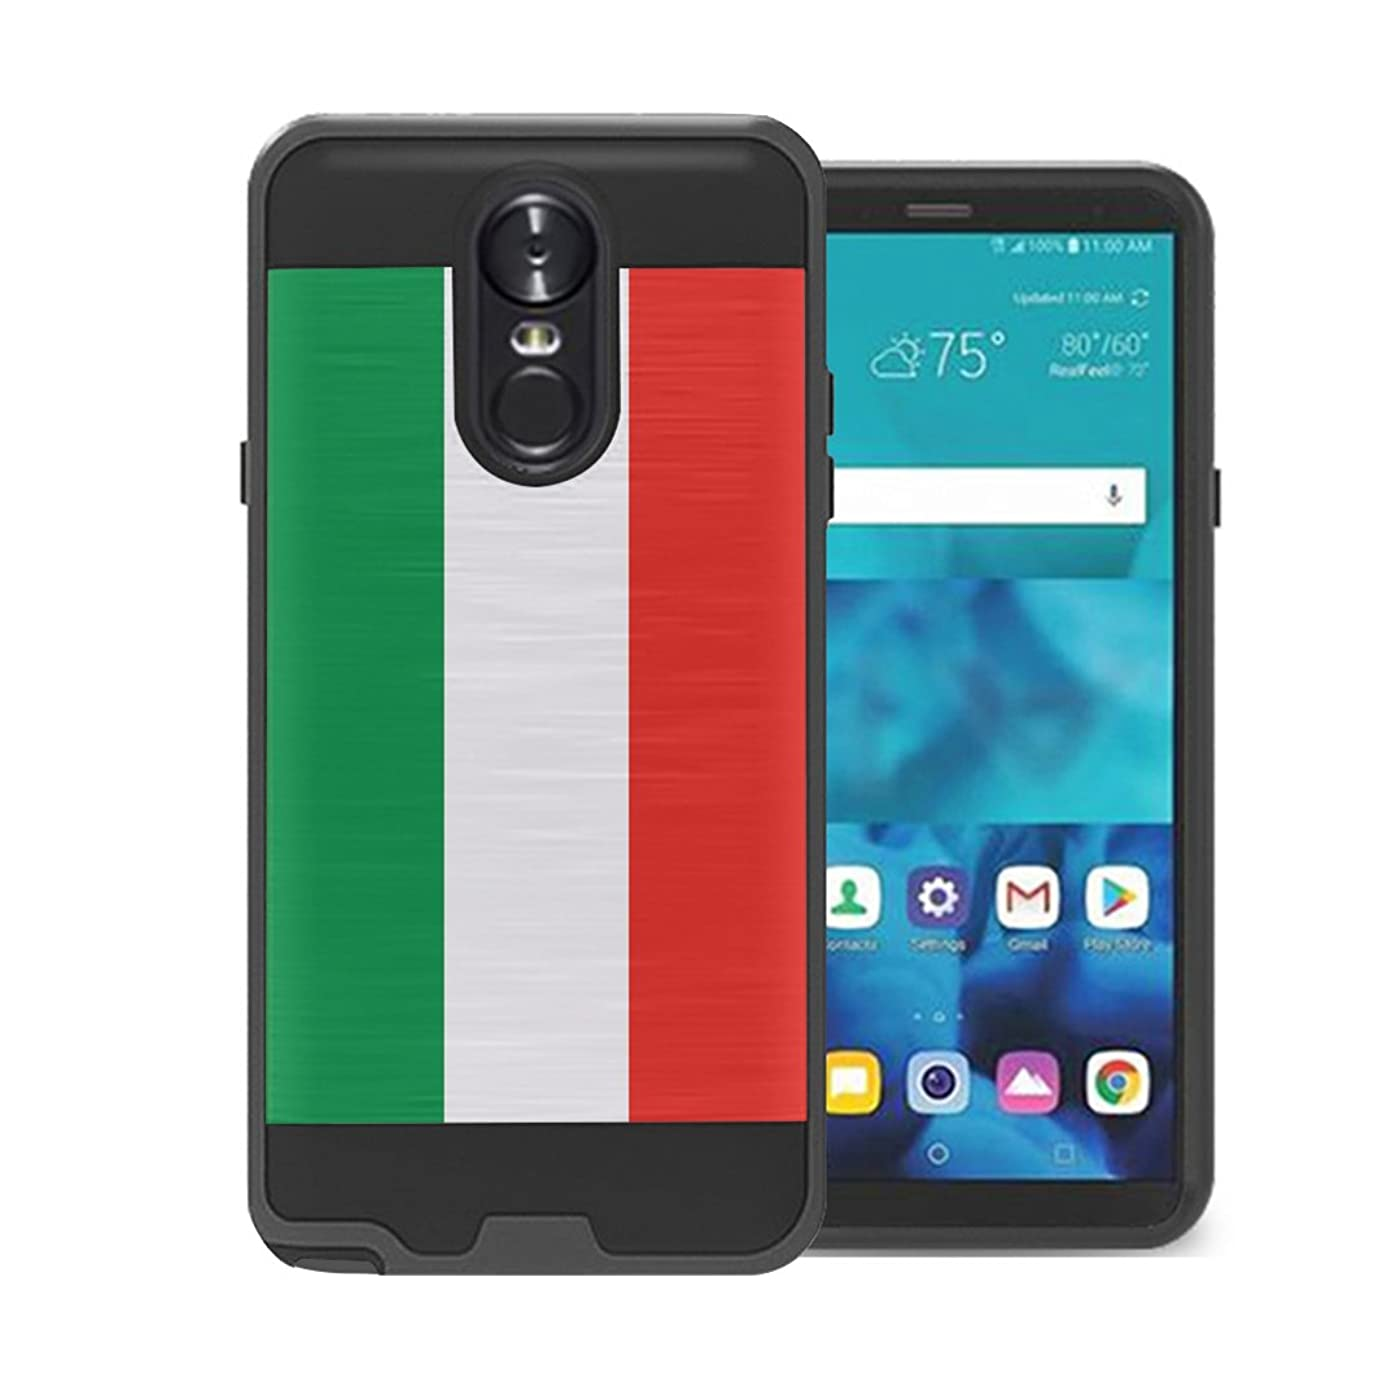 Izumi Case Compatible with LG Stylo 4 Plus, LG Stylo 4, LG Q Stylus [Hybrid Fusion Supports Wireless Charging Dual Layer Slick Armor Case Black] for LG Stylo 4 - (Italy Flag) zfvc600395965192